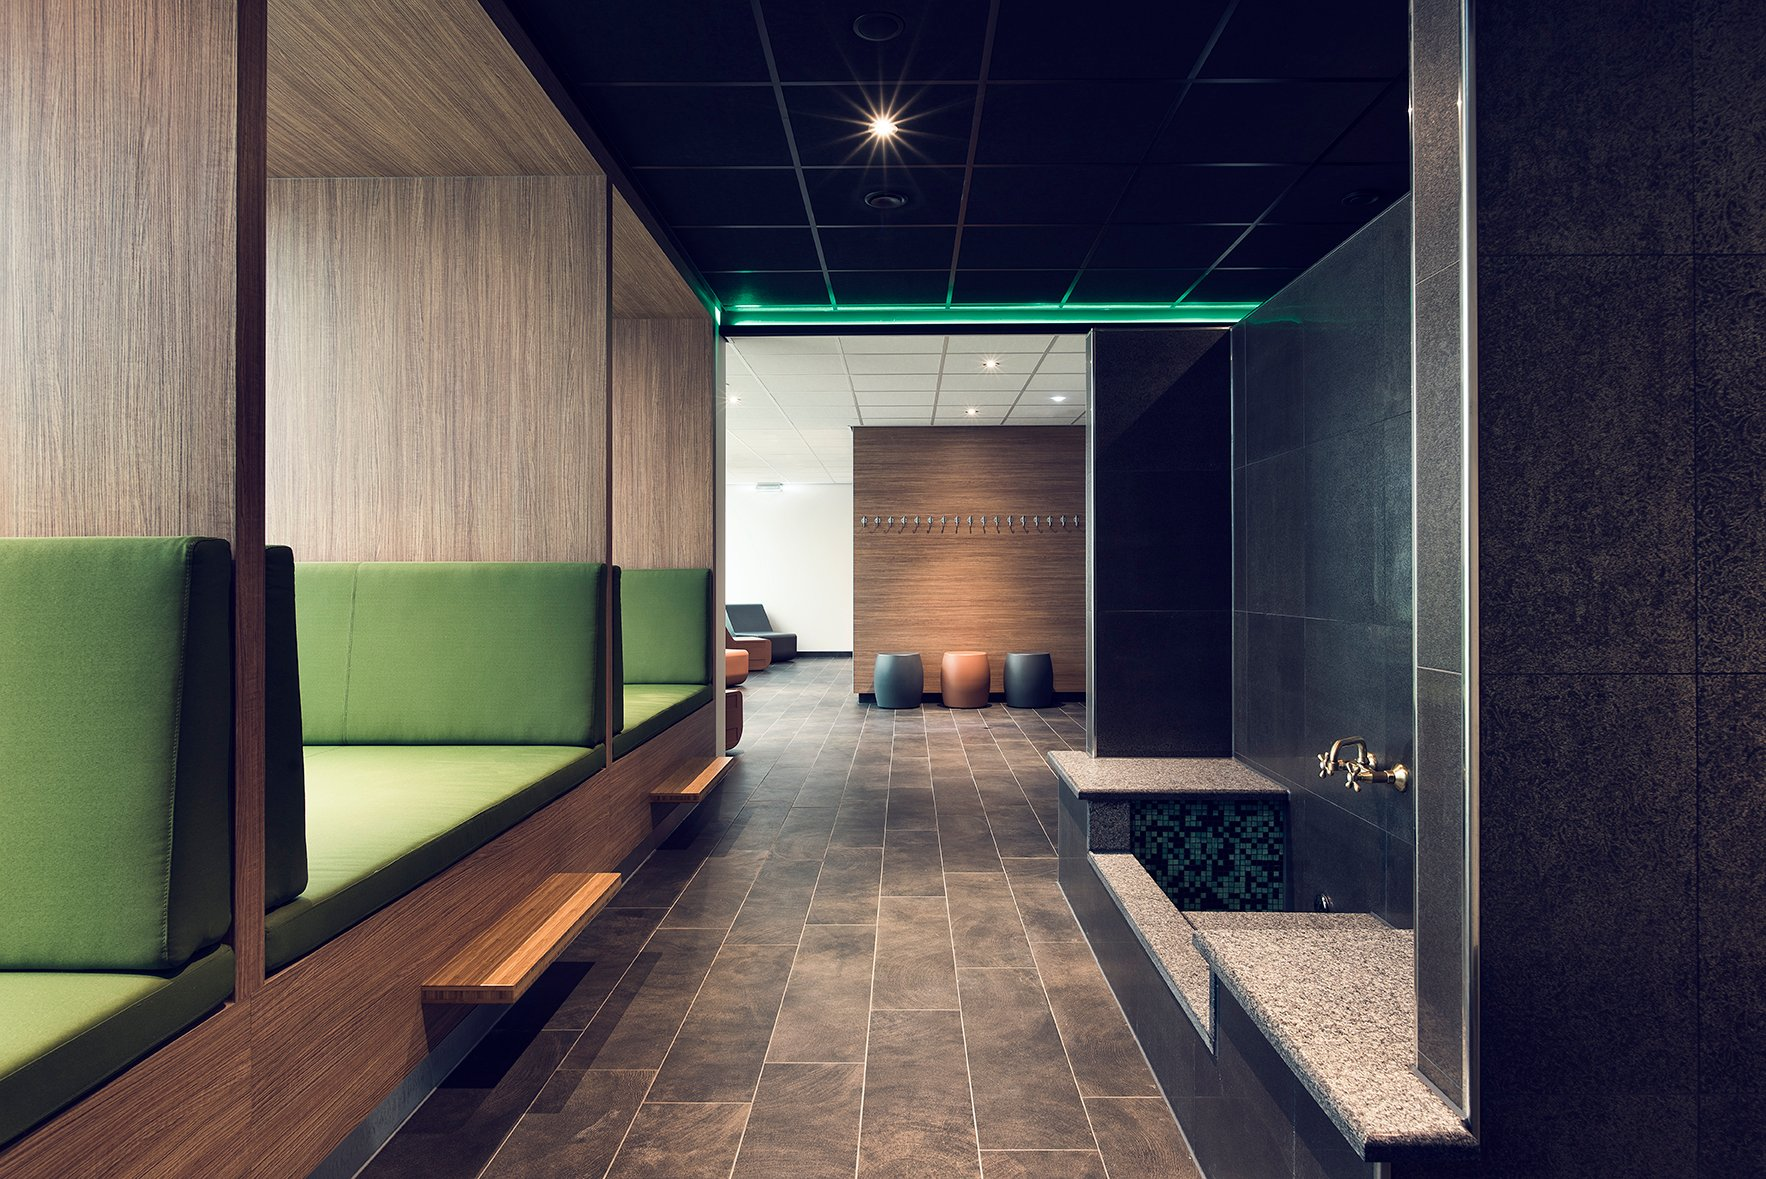 Interieurarchitect Spa-welness-sauna-lounge